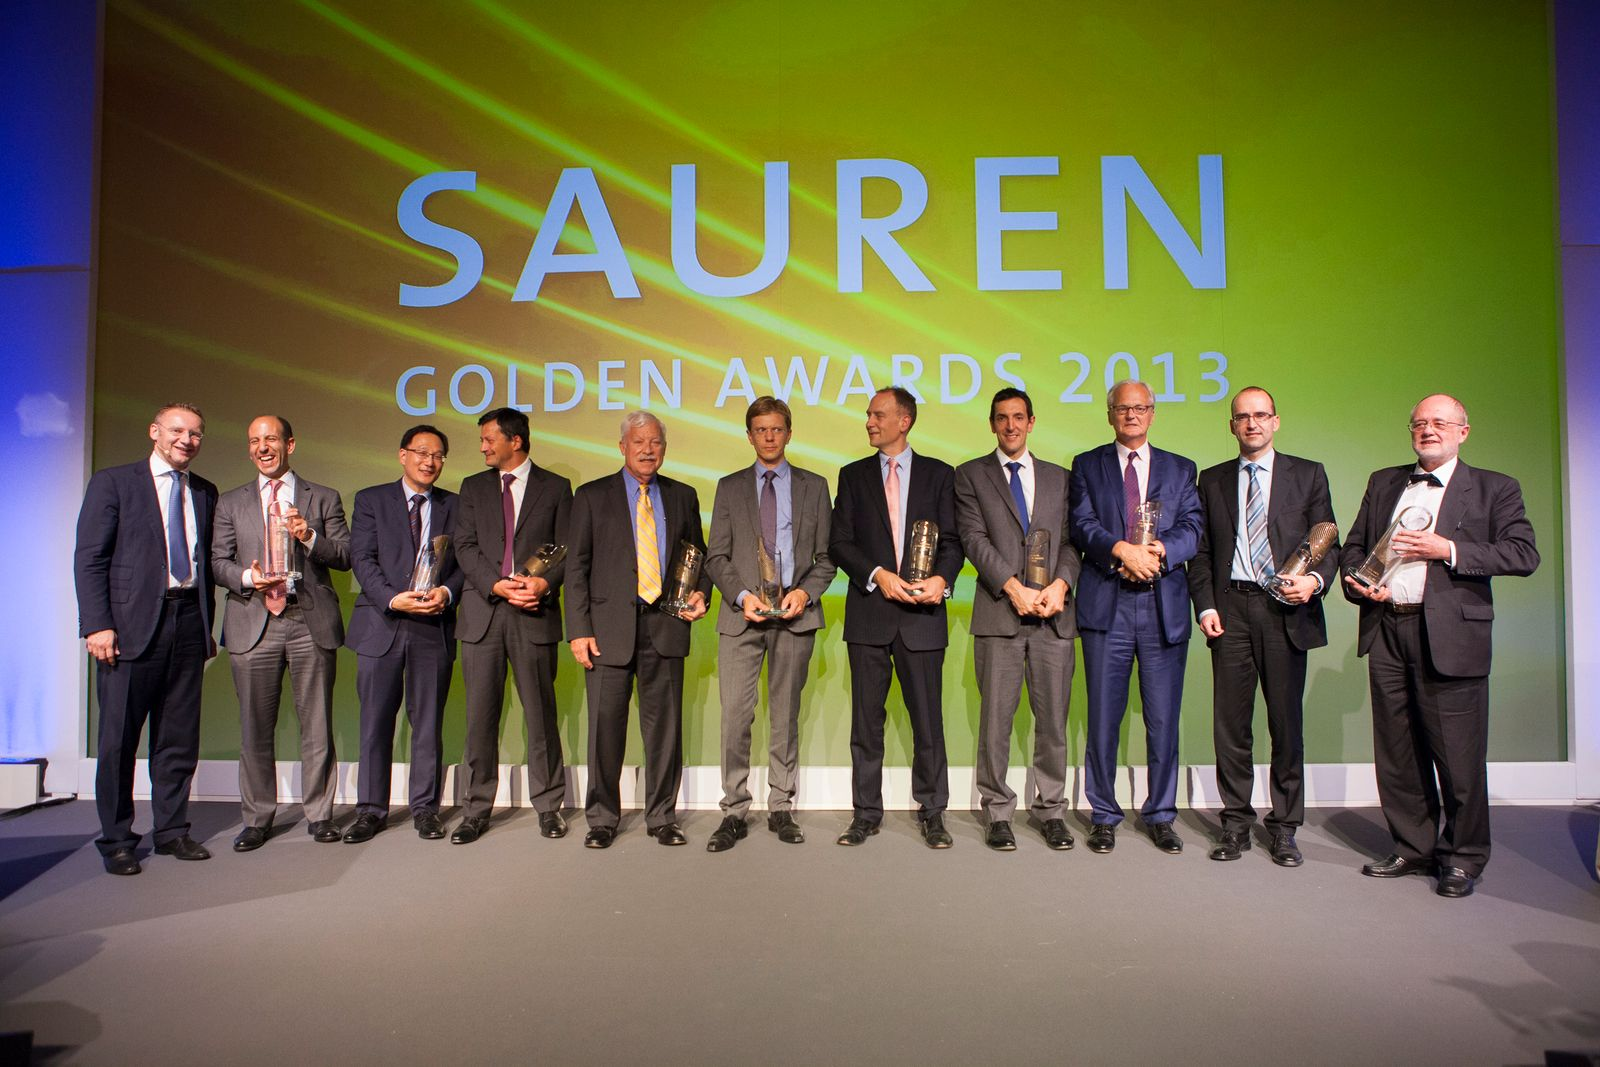 Sauren Fonds Research / Gruppenbild